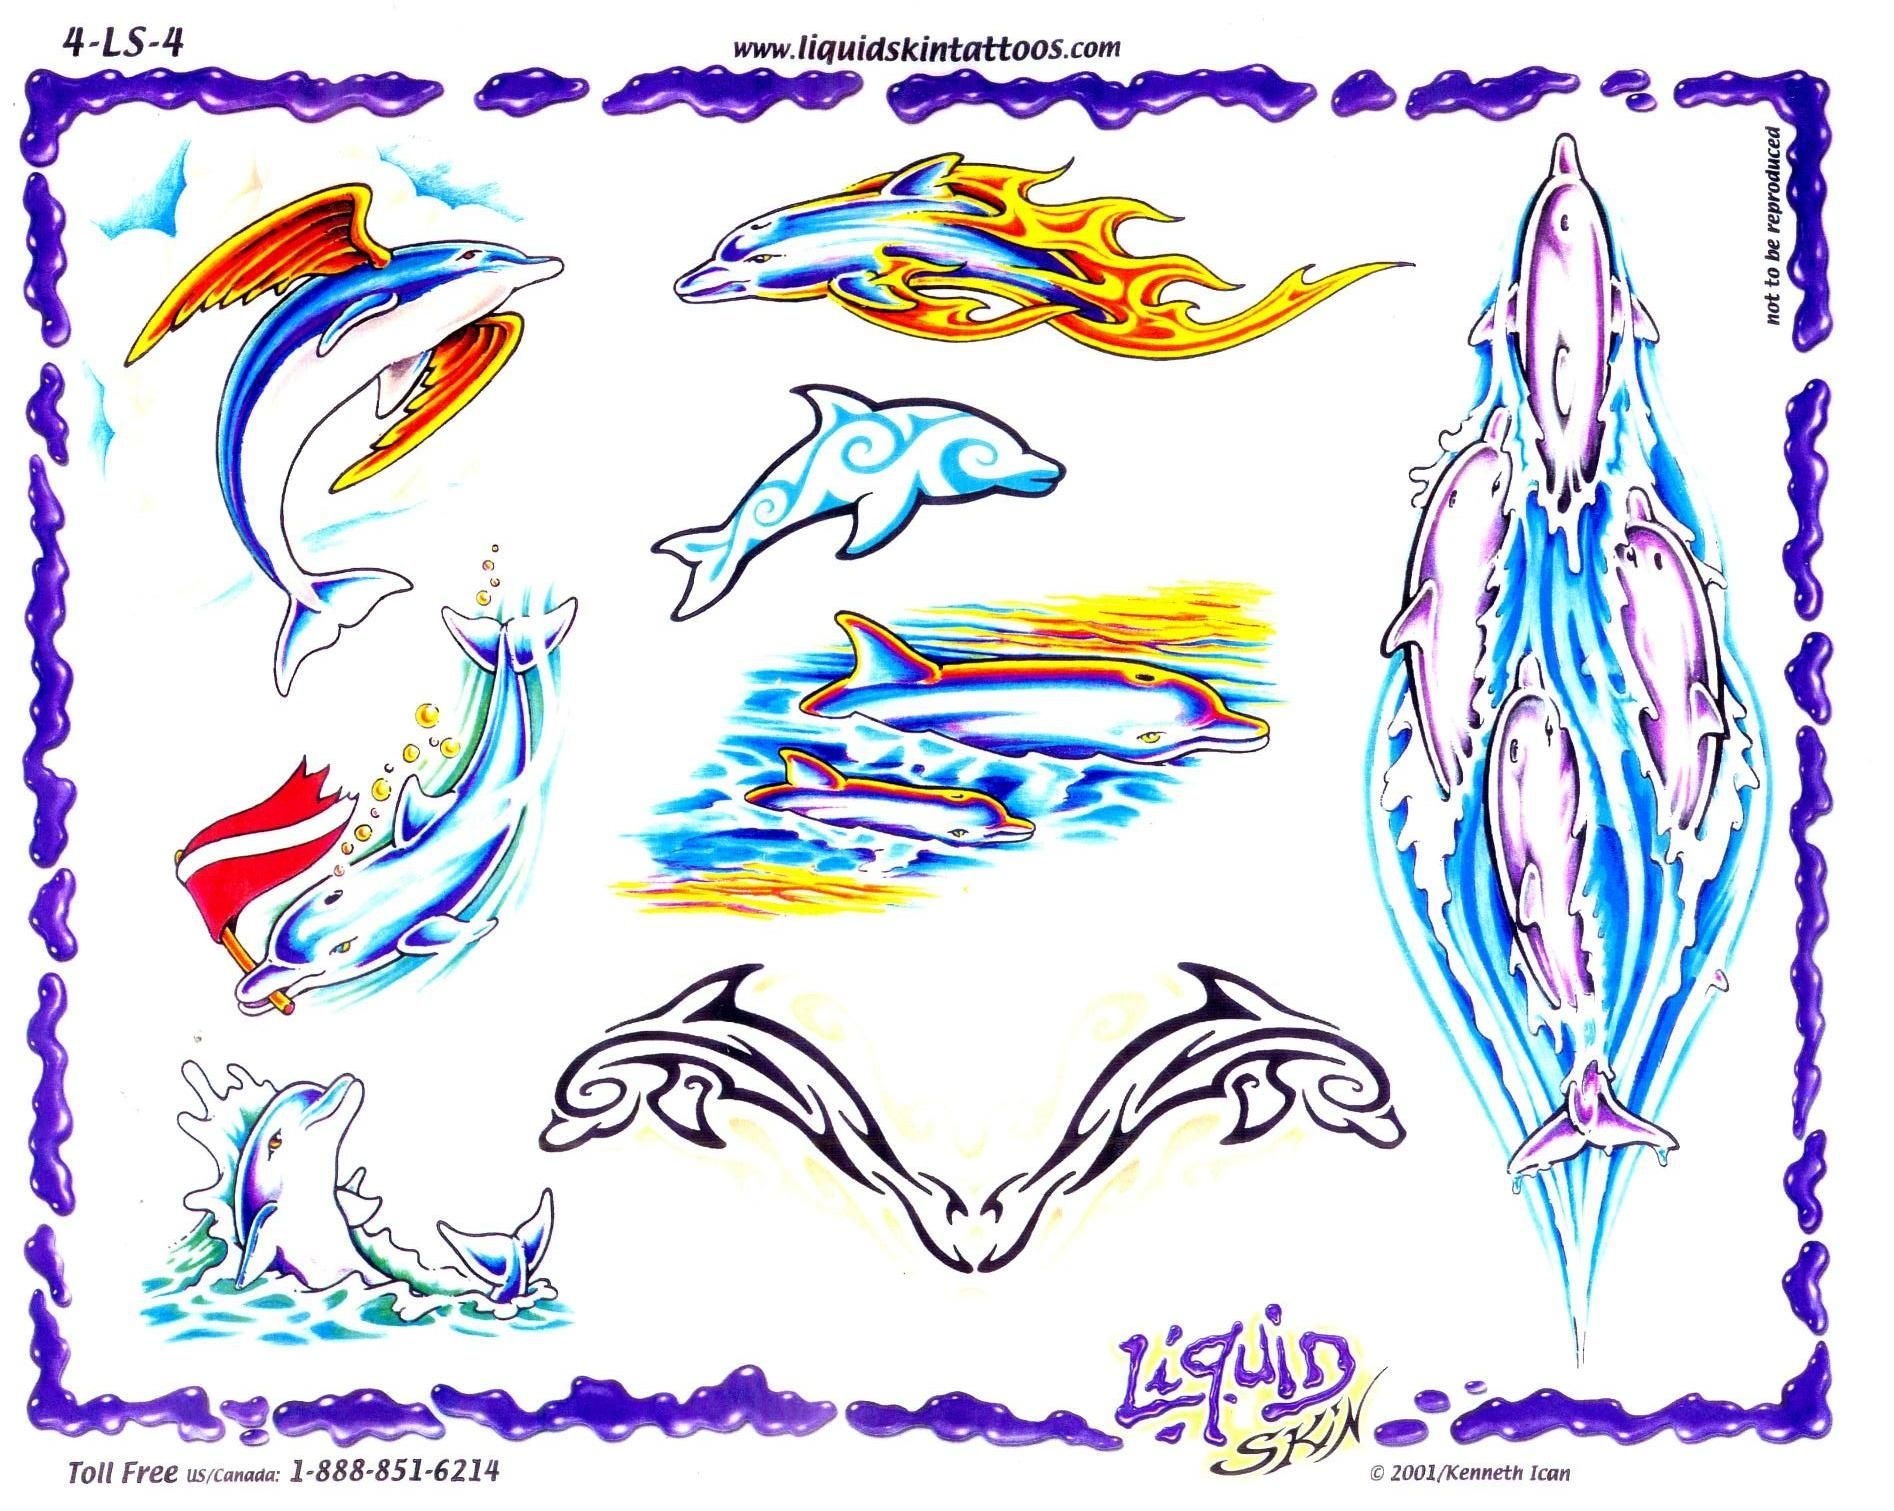 Pics photos dolphin tattoo design tattoos art and designs - The One On The Right To Be Added To My Left Leg With The Dragon Dolphins Tattoo